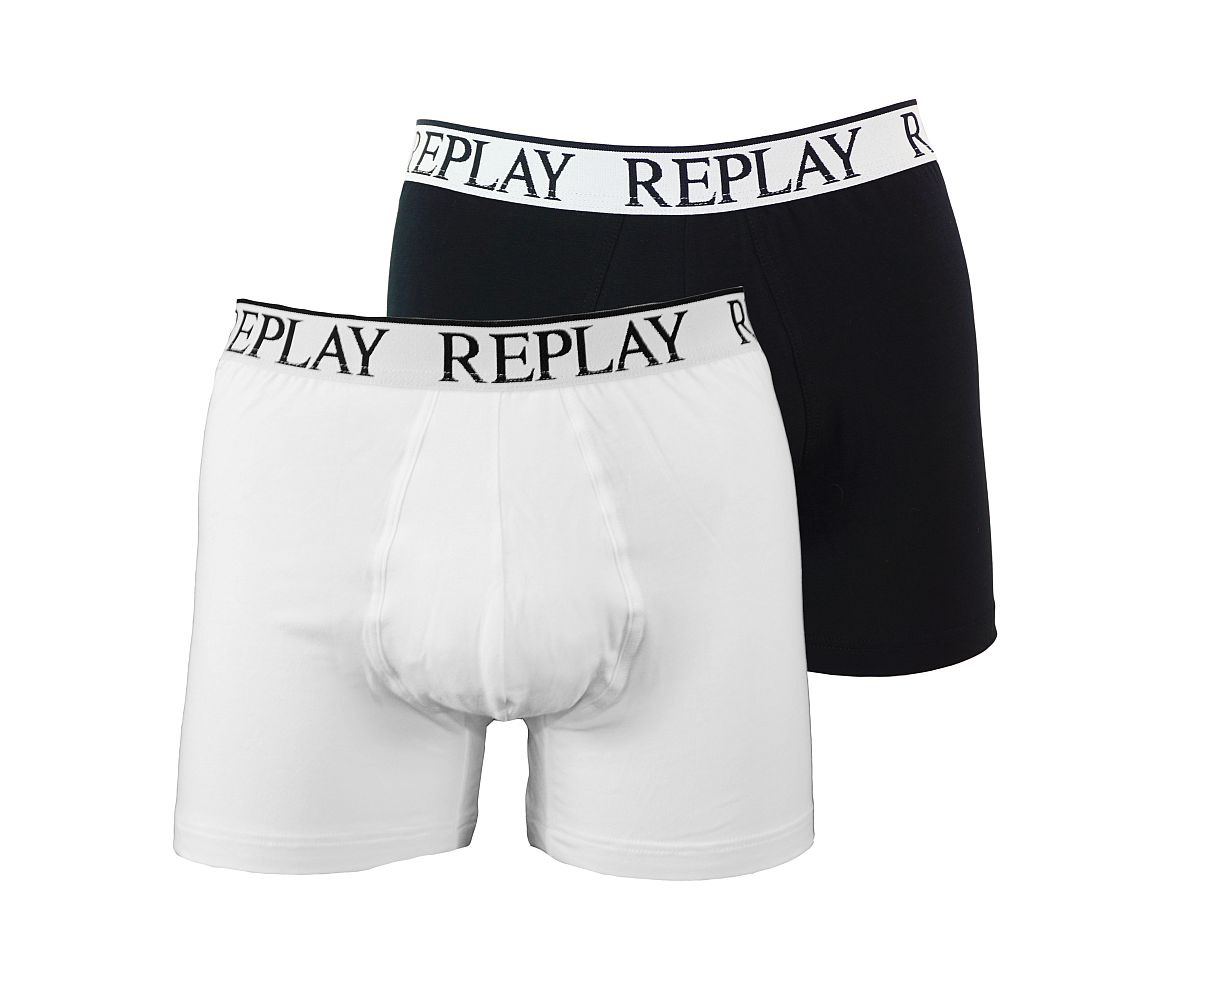 Replay 2er Pack Shorts Boxershorts M606001 001 schwarz weiss gp